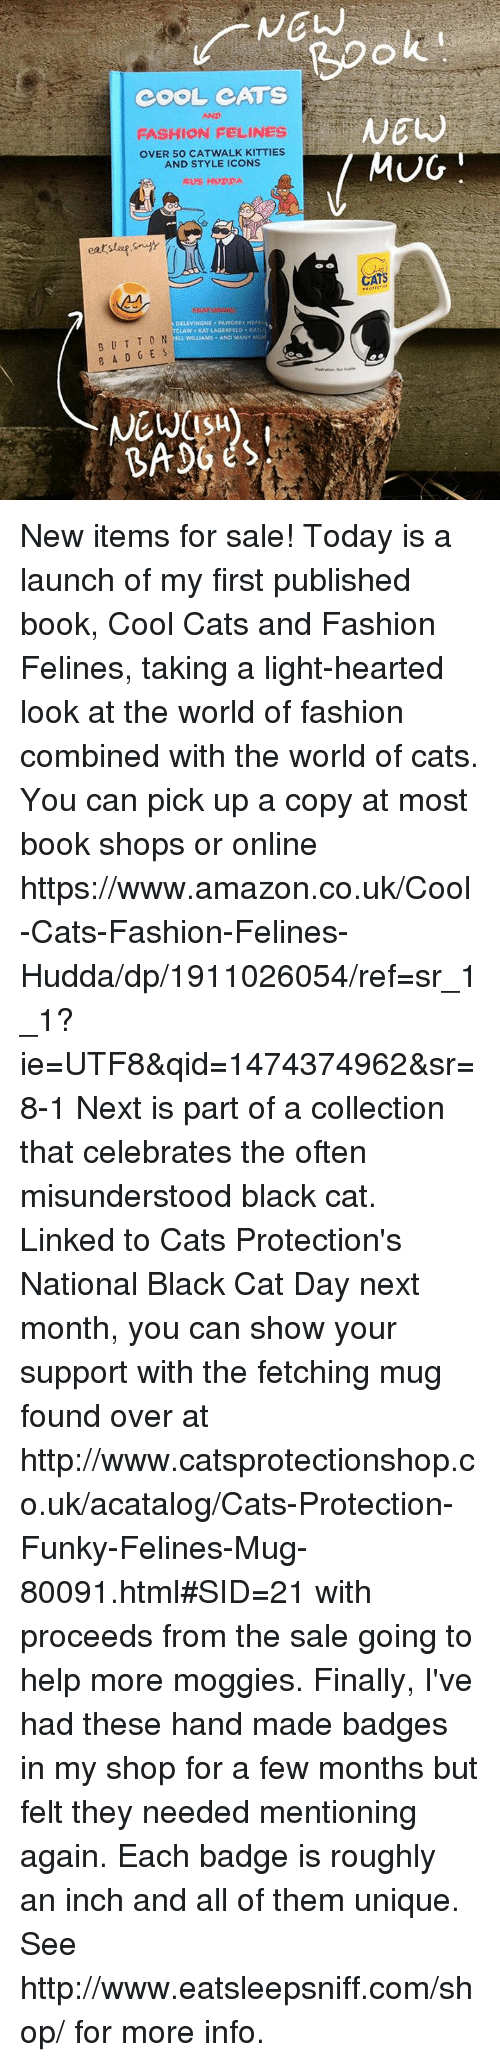 COOL CATS FASHION FELINES OVER 50 CATWALK KITTIES AND STYLE